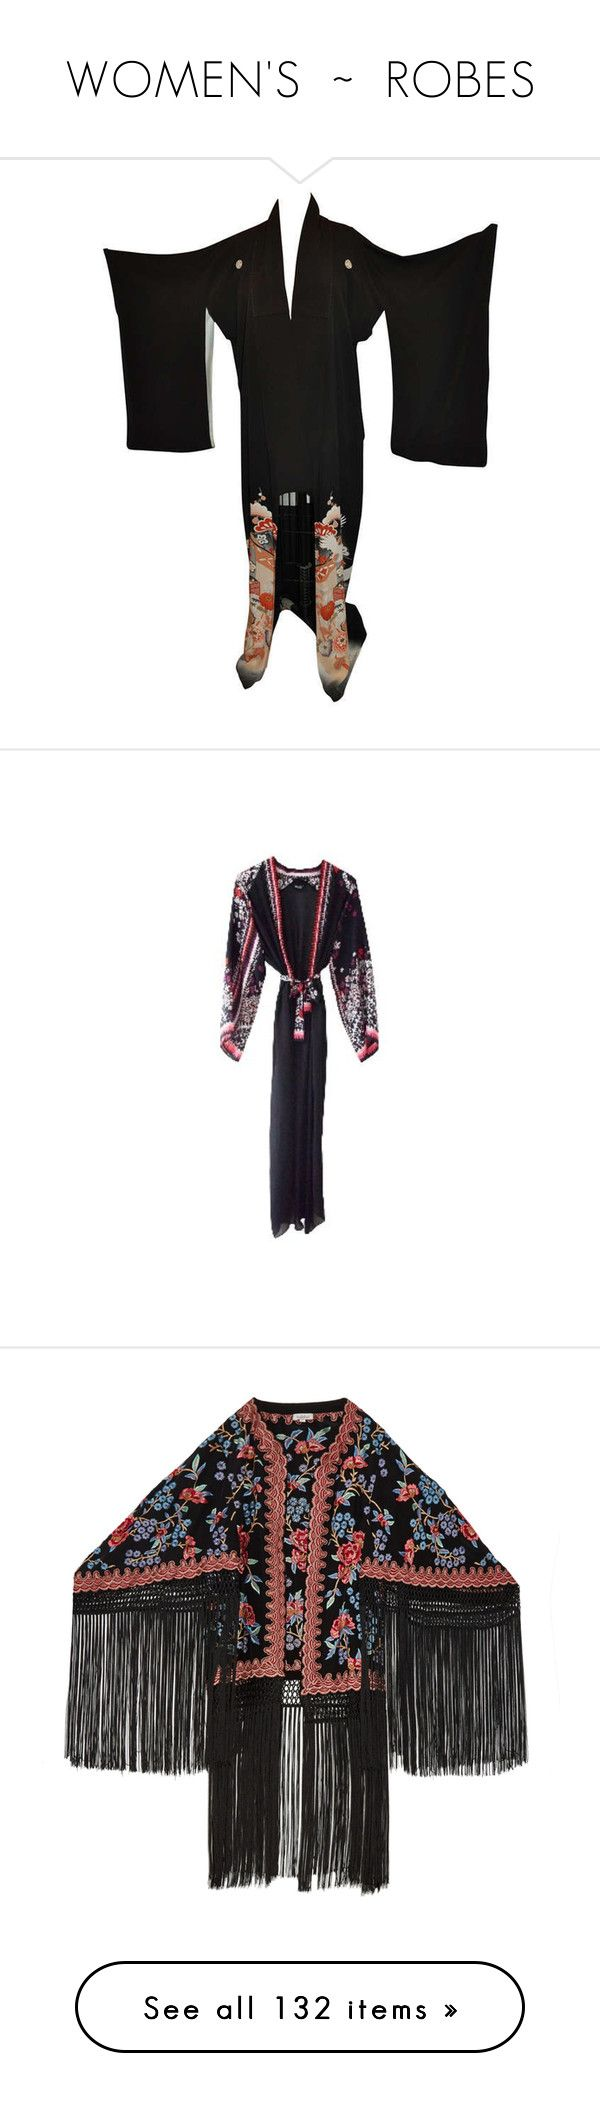 """""""WOMEN'S  ~  ROBES"""" by kuropirate ❤ liked on Polyvore featuring intimates, robes, multiple, kimono robe, silk kimono robe, silk robe, silk kimono, silk bathrobe, silk bath robes and robe kimono"""